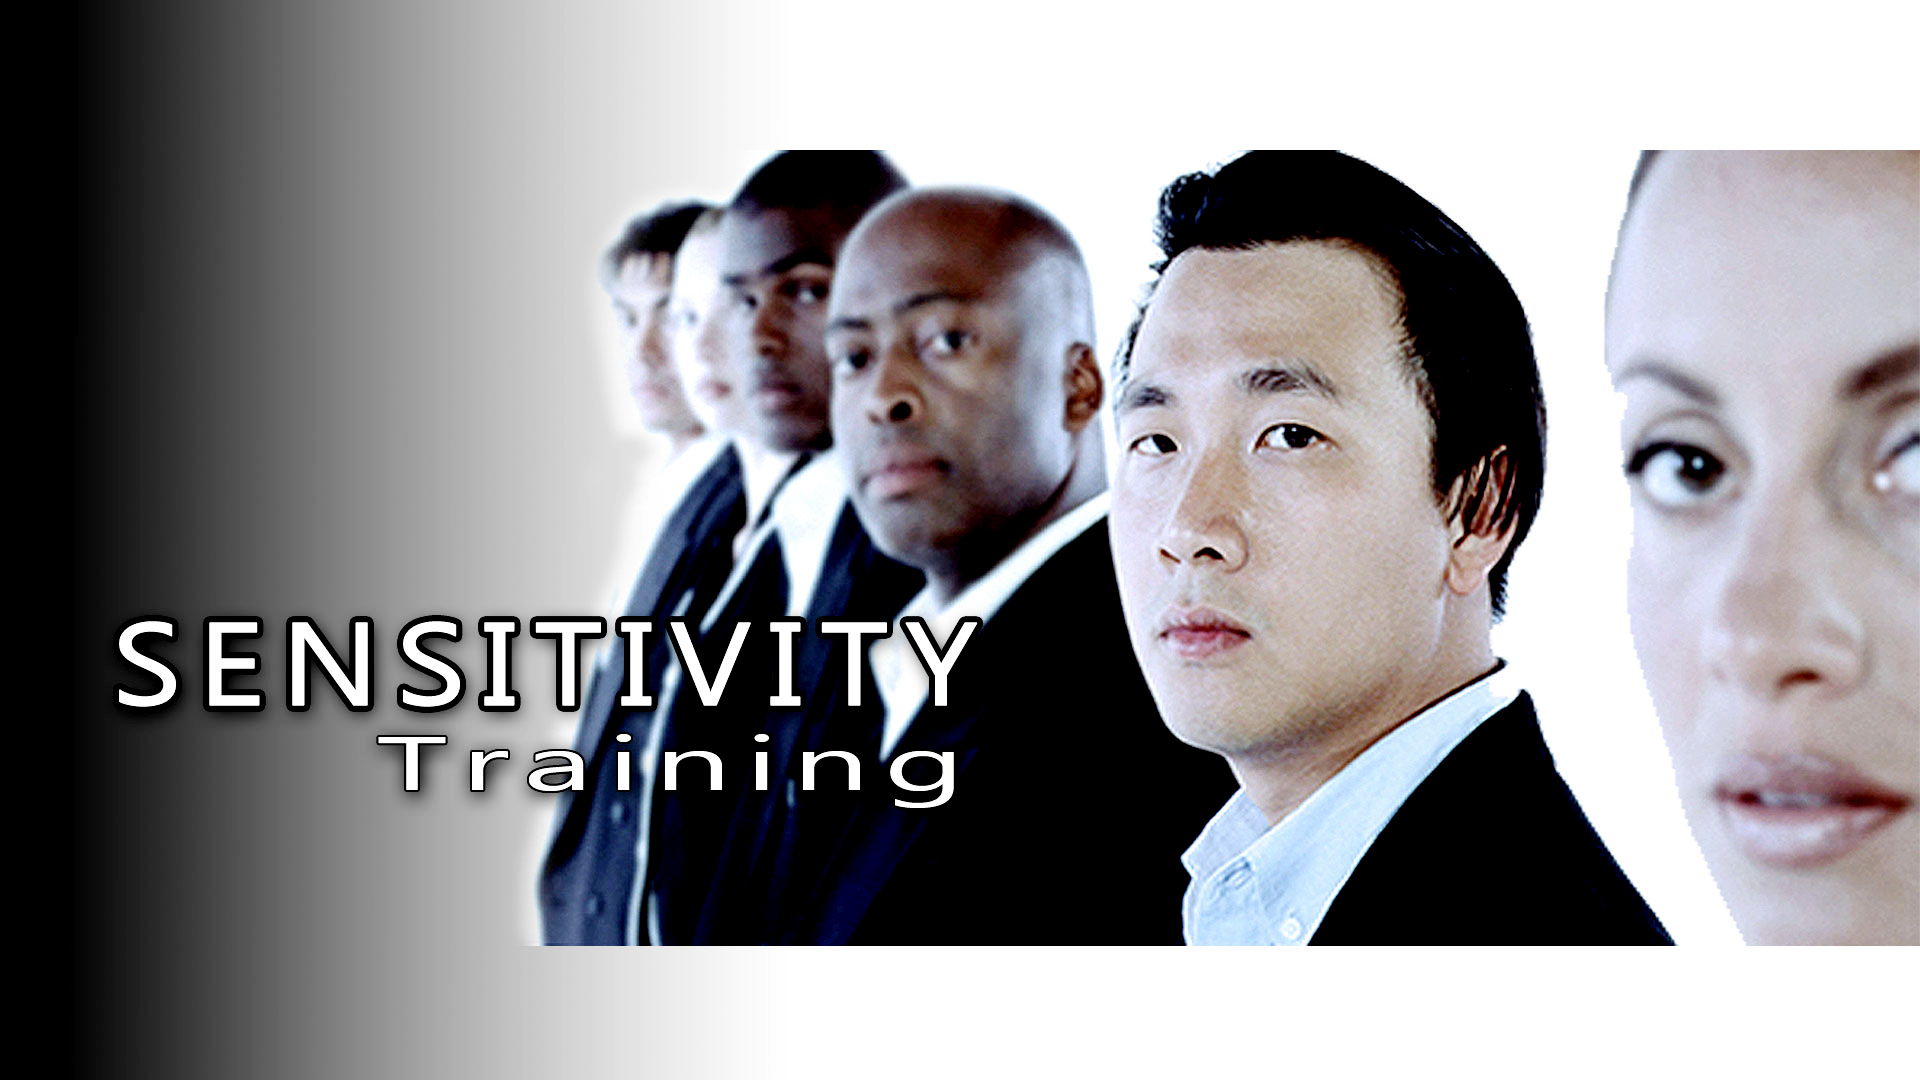 Diversity and sensitivity training